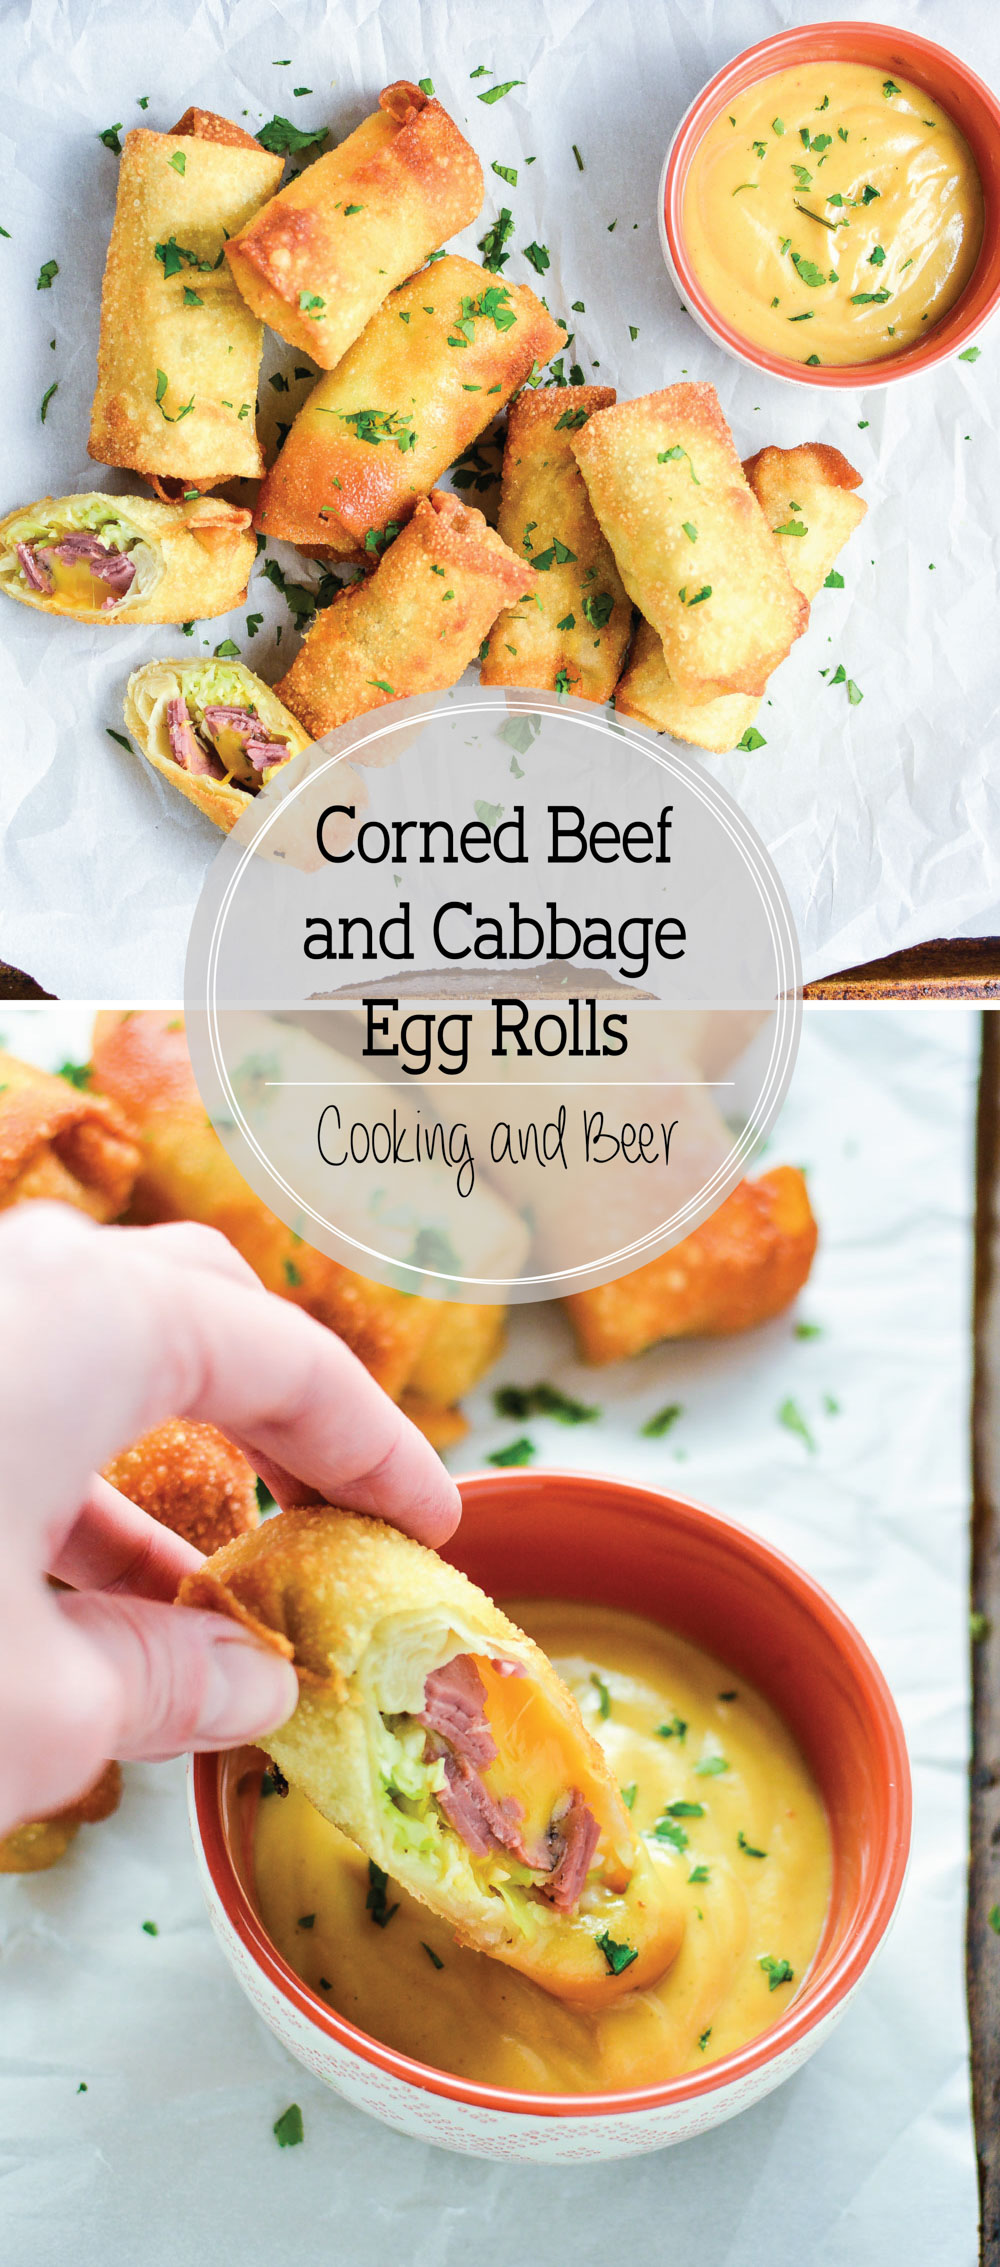 Corned Beef and Cabbage Egg Rolls with Homemade Beer Mustard is the perfect appetizer recipe for St. Patrick's Day!